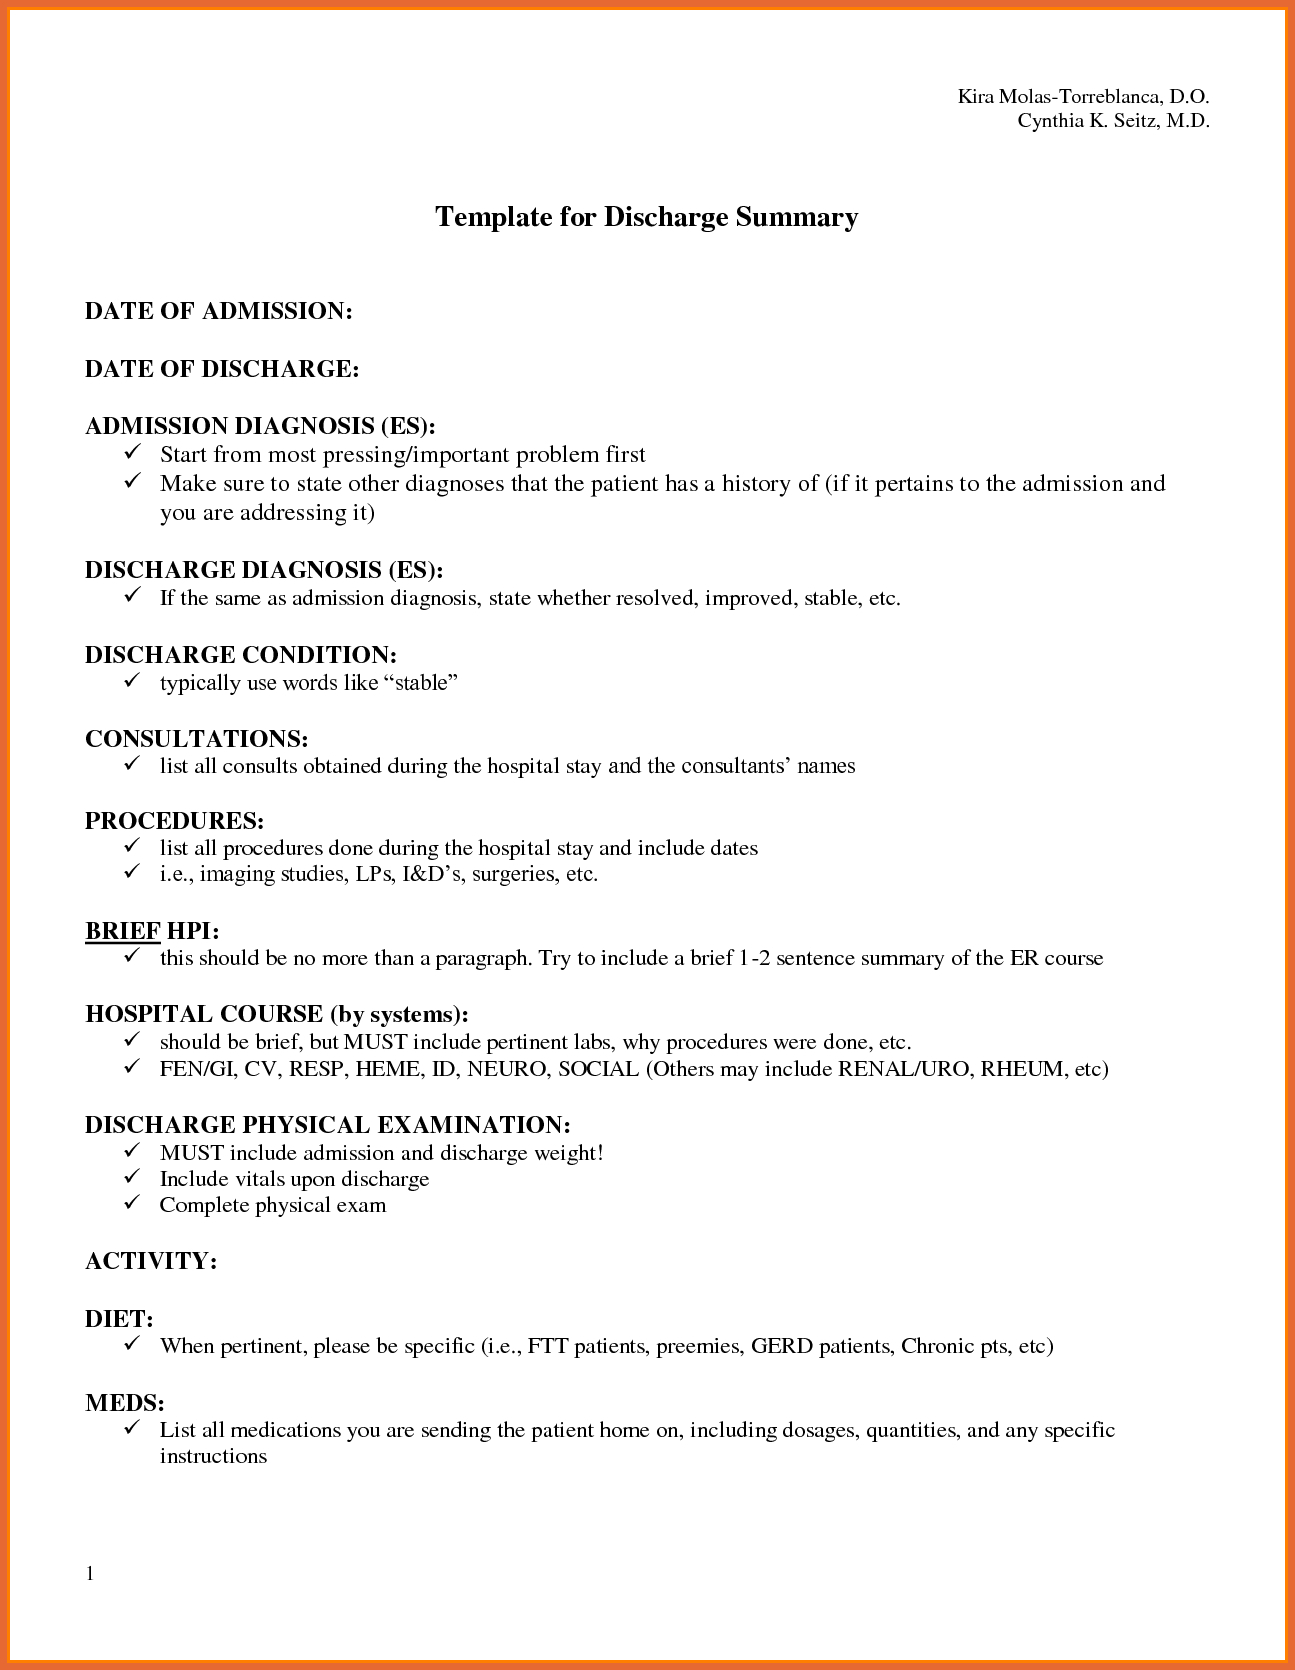 Discharge Summary Exampledischarge Summary Example Discharge With